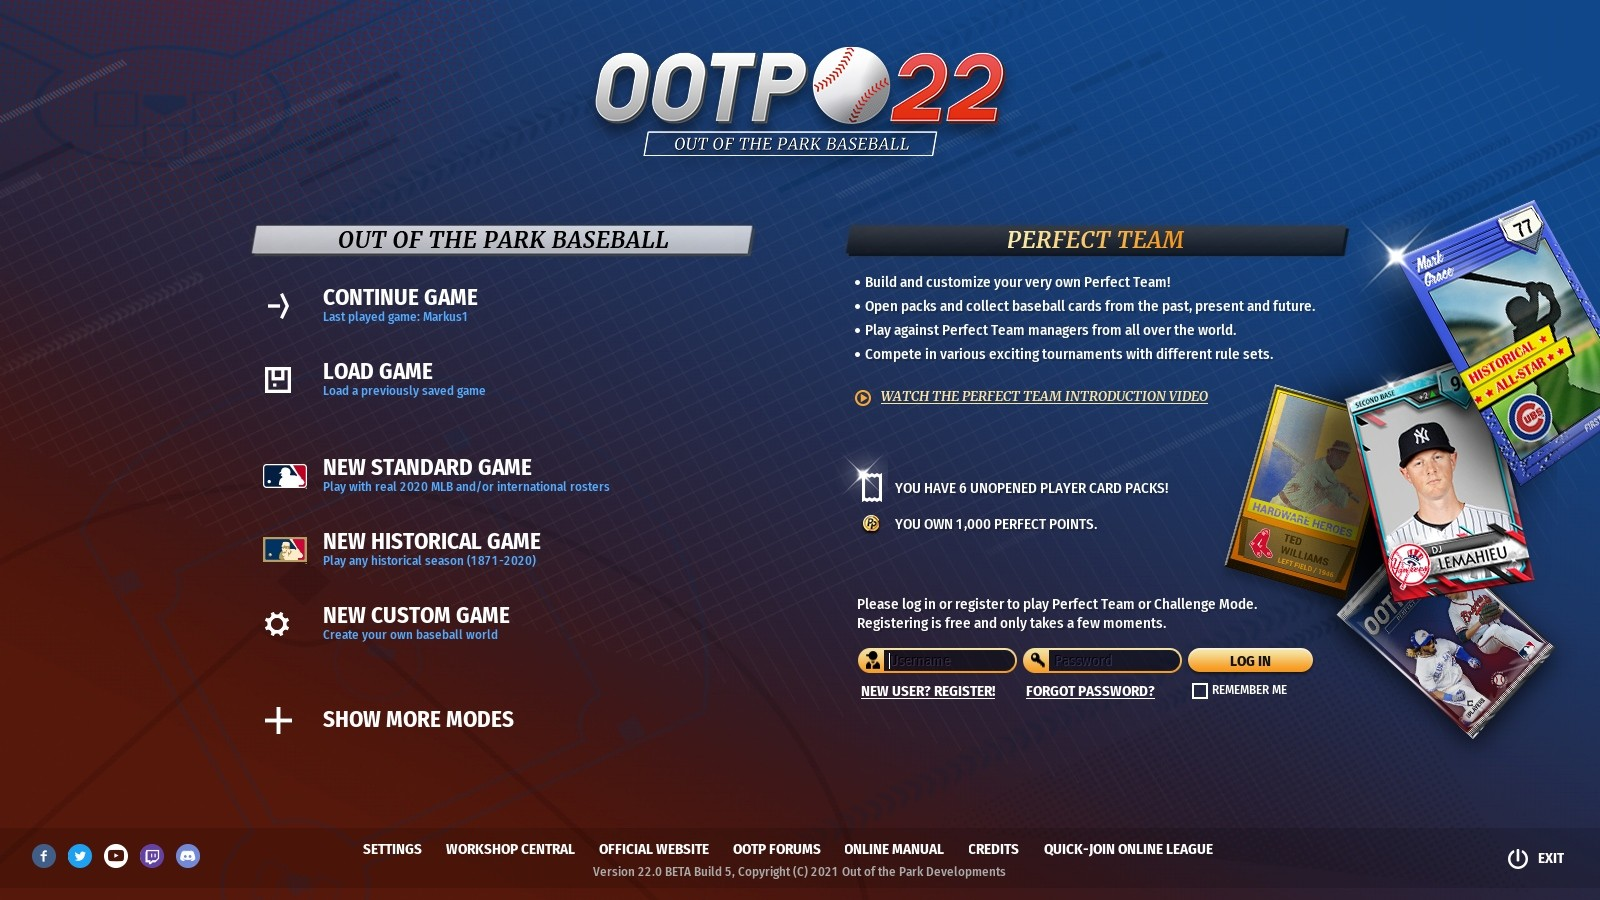 Find the best gaming PC for OotPB22